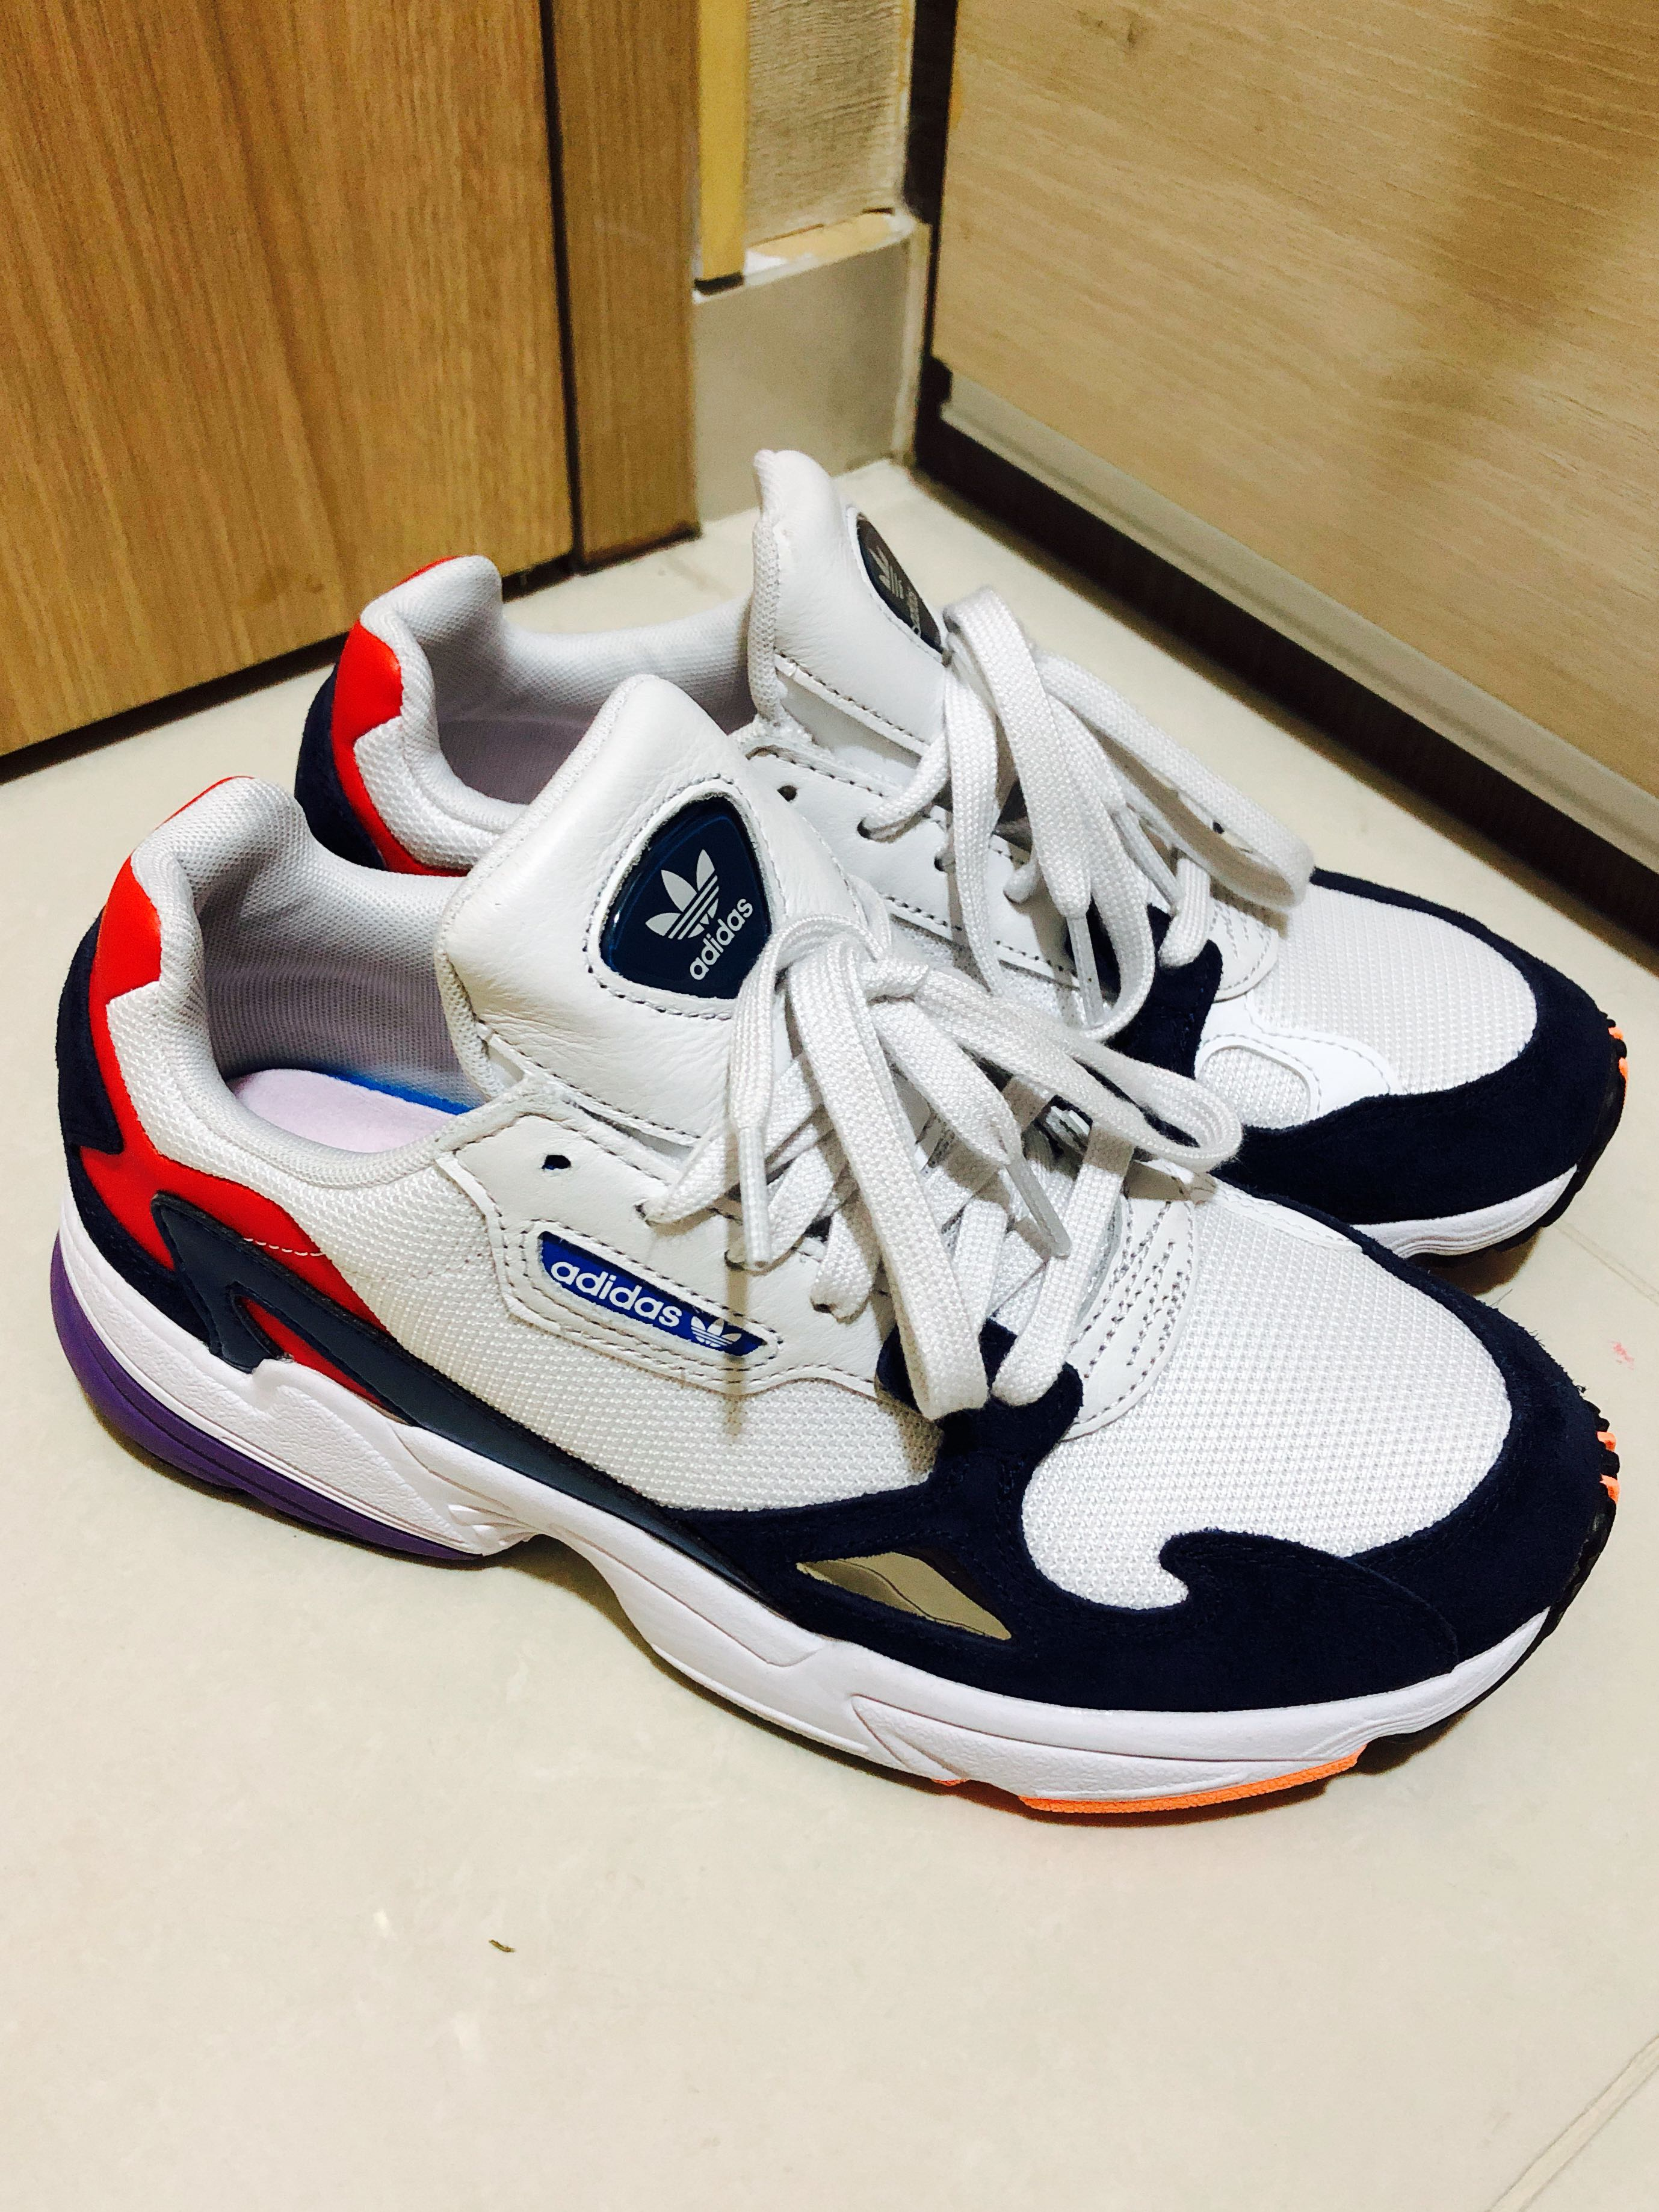 best sneakers 6e695 46a6e Adidas Falcon shoes, Womens Fashion, Shoes, Sneakers on Caro